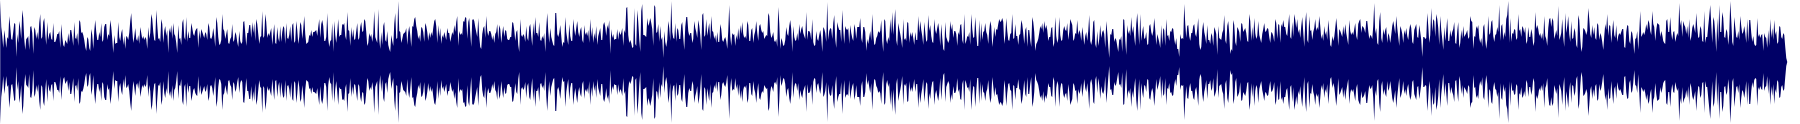 waveform of track #76467